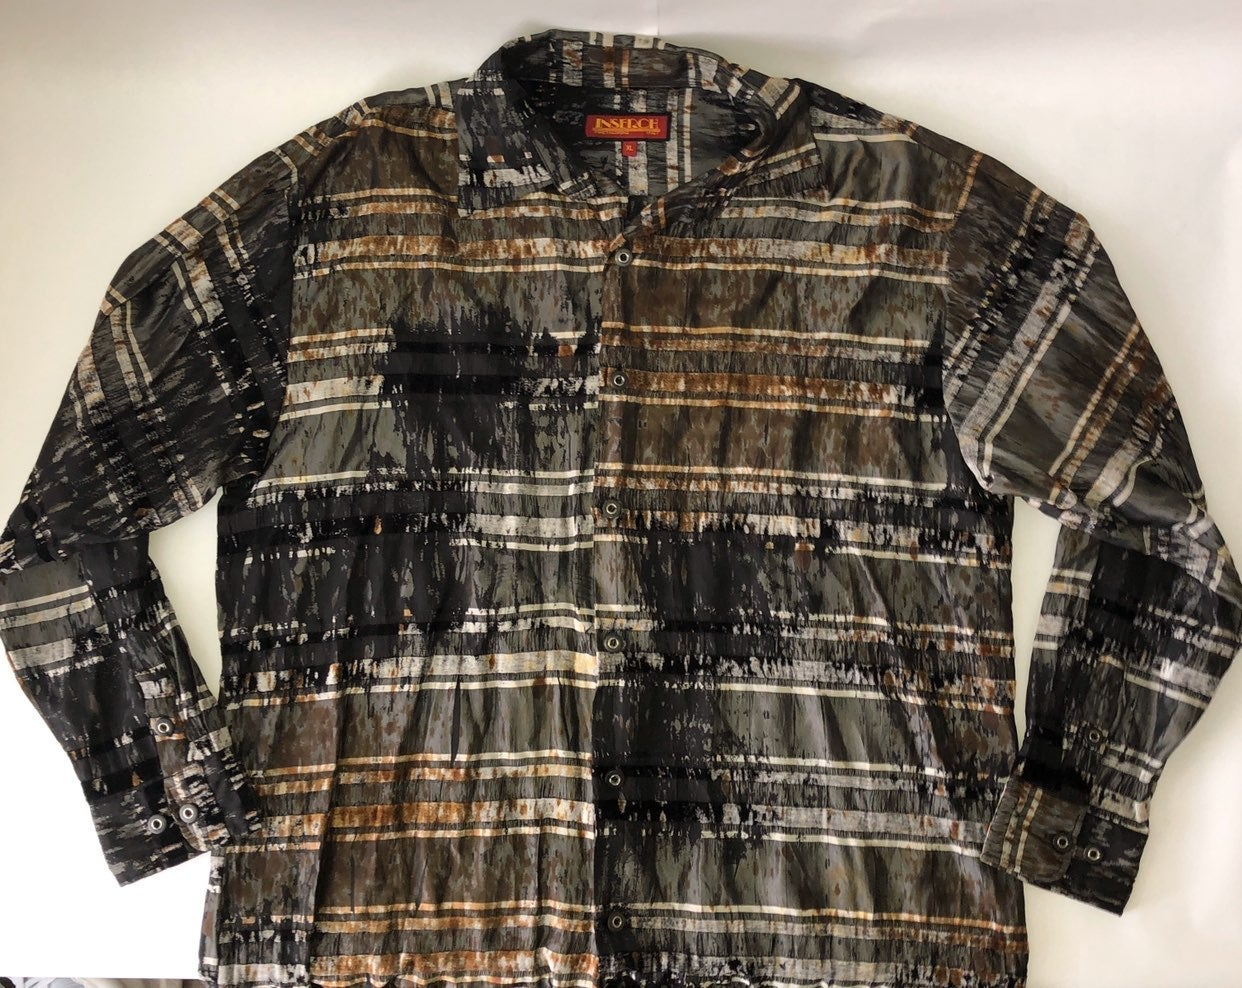 Inserch Italy Button up Shirt Size XL